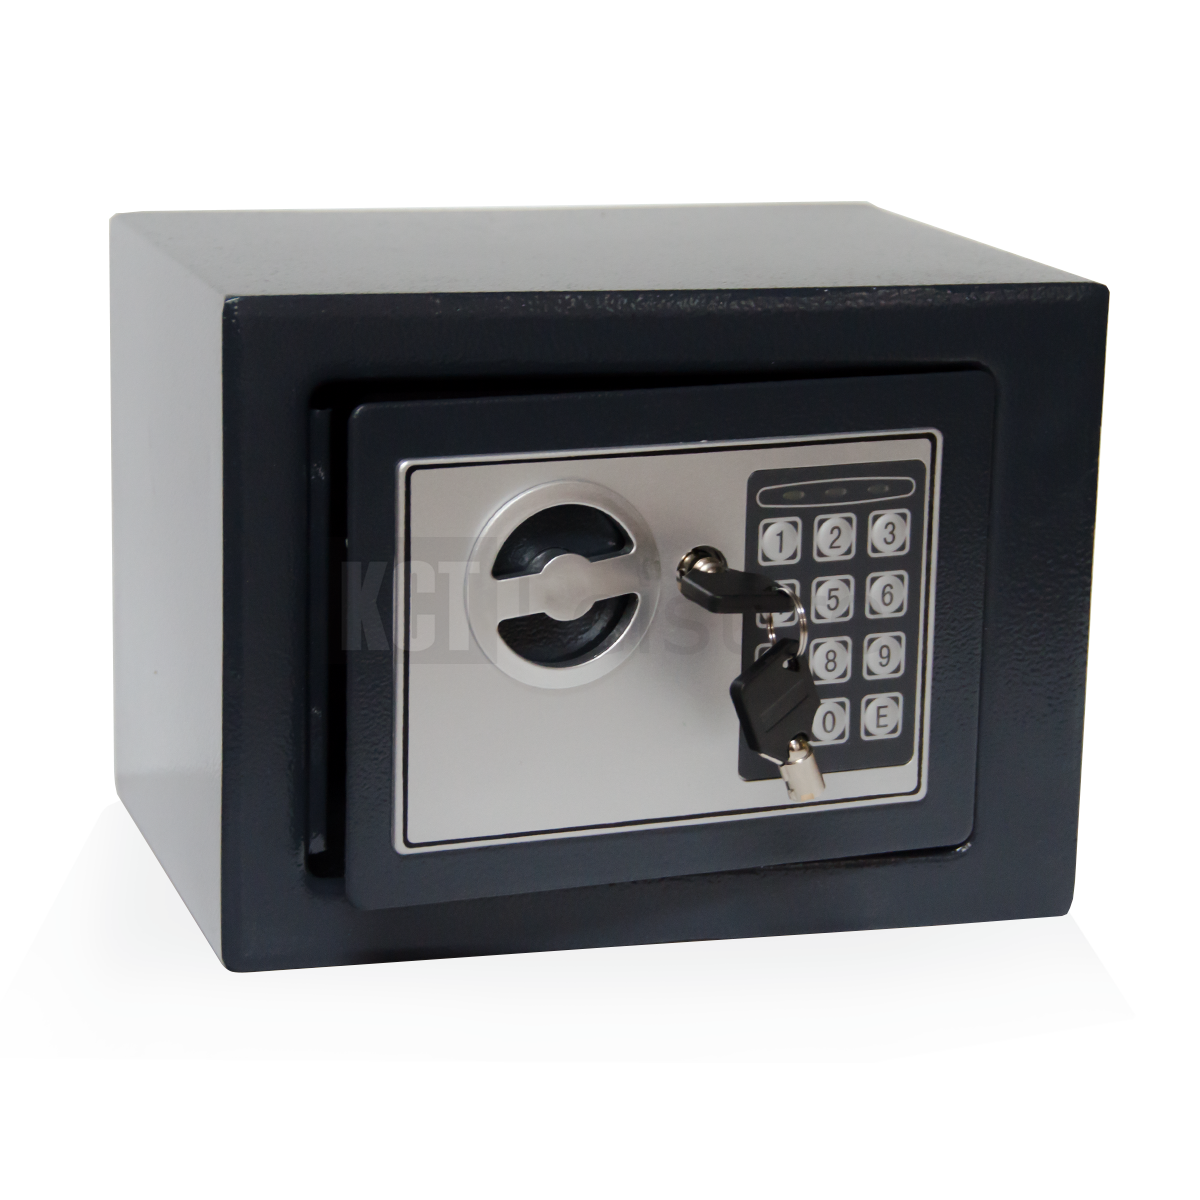 Kct Small Home Digital Safe Secure Safety Box High